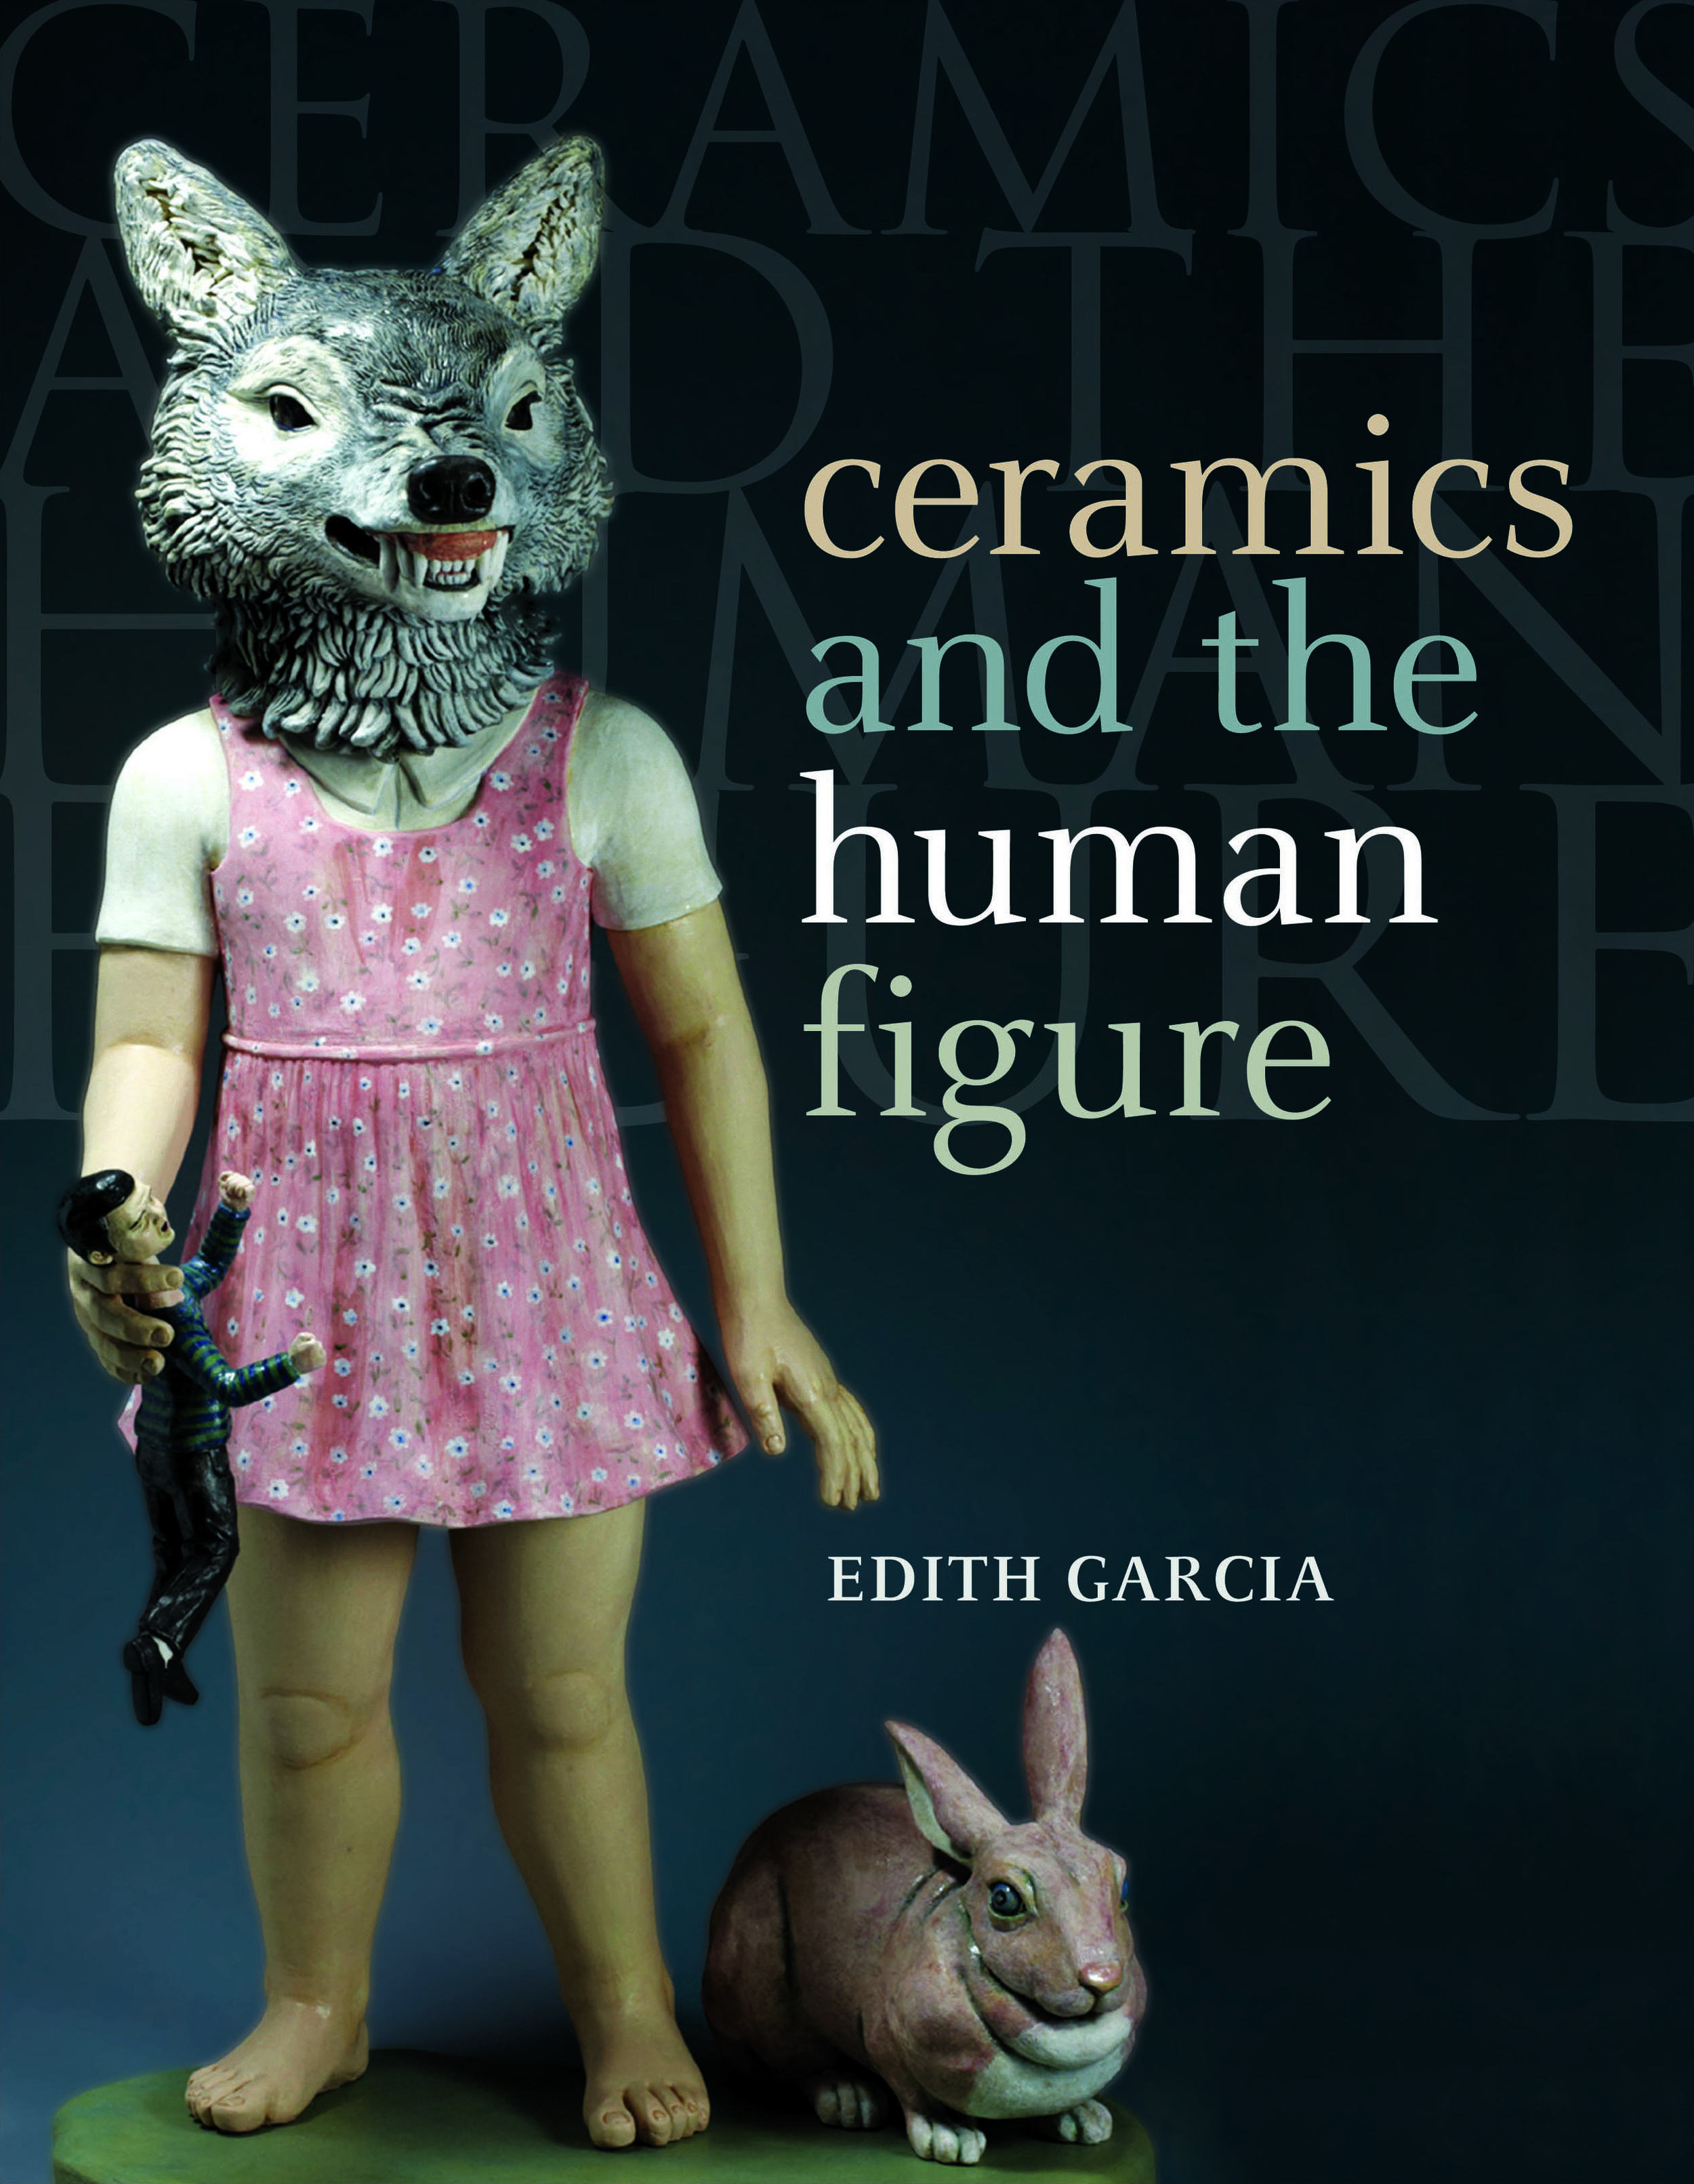 Ceramics and the Human Figure   Available on Amazon - Author of Ceramics and the Human FigureAn inside look into 40 international artists and their approach to working with the human figure and clay.Representation of the human form through artistic expression has always existed in clay form, and it continues to evolve today. From exploring the whole figure, through fragmentation to the use of the body as a means to create, artists today are working with clay and the human form in very unconventional ways across the globe. Contemporary artists have learned to play with the possibilities of materials and form more so than ever before, with digital technologies enabling and enhancing the creative process. This publication features works by key ceramic artists that work within the realm of the human form, showcasing and discussing individual artists with practices within the field of installation and sculpture as well as those incorporating new technologies. The artists are divided by themes, with each chapter giving a short introduction, and then going on to display the work and ideas of each, showing the large variety of work being made today. A chapter is also included on making methods, giving making sequences of the more innovative and challenging methods used by some of these artists.